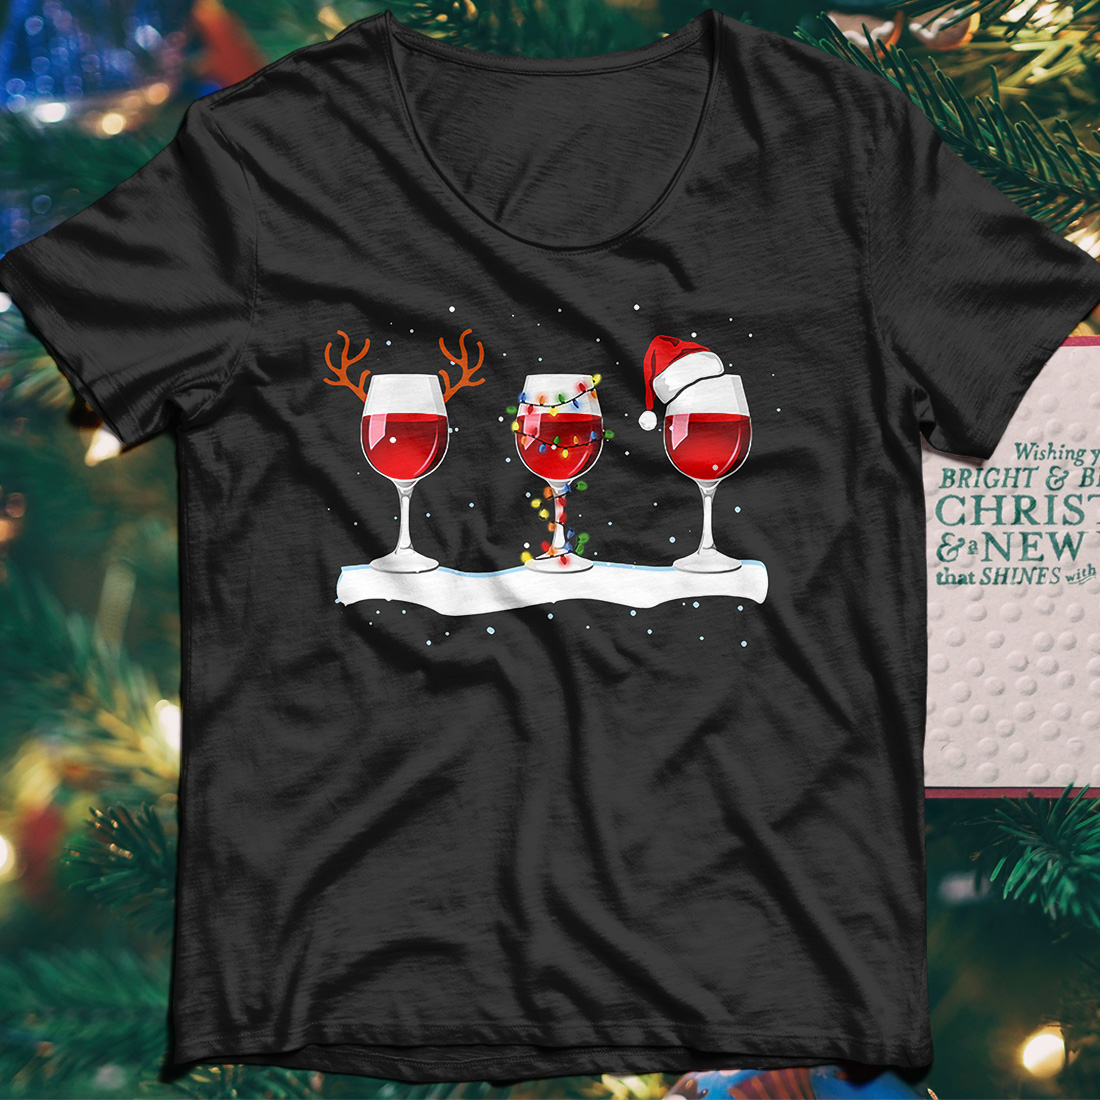 Special Christmas wine shirt